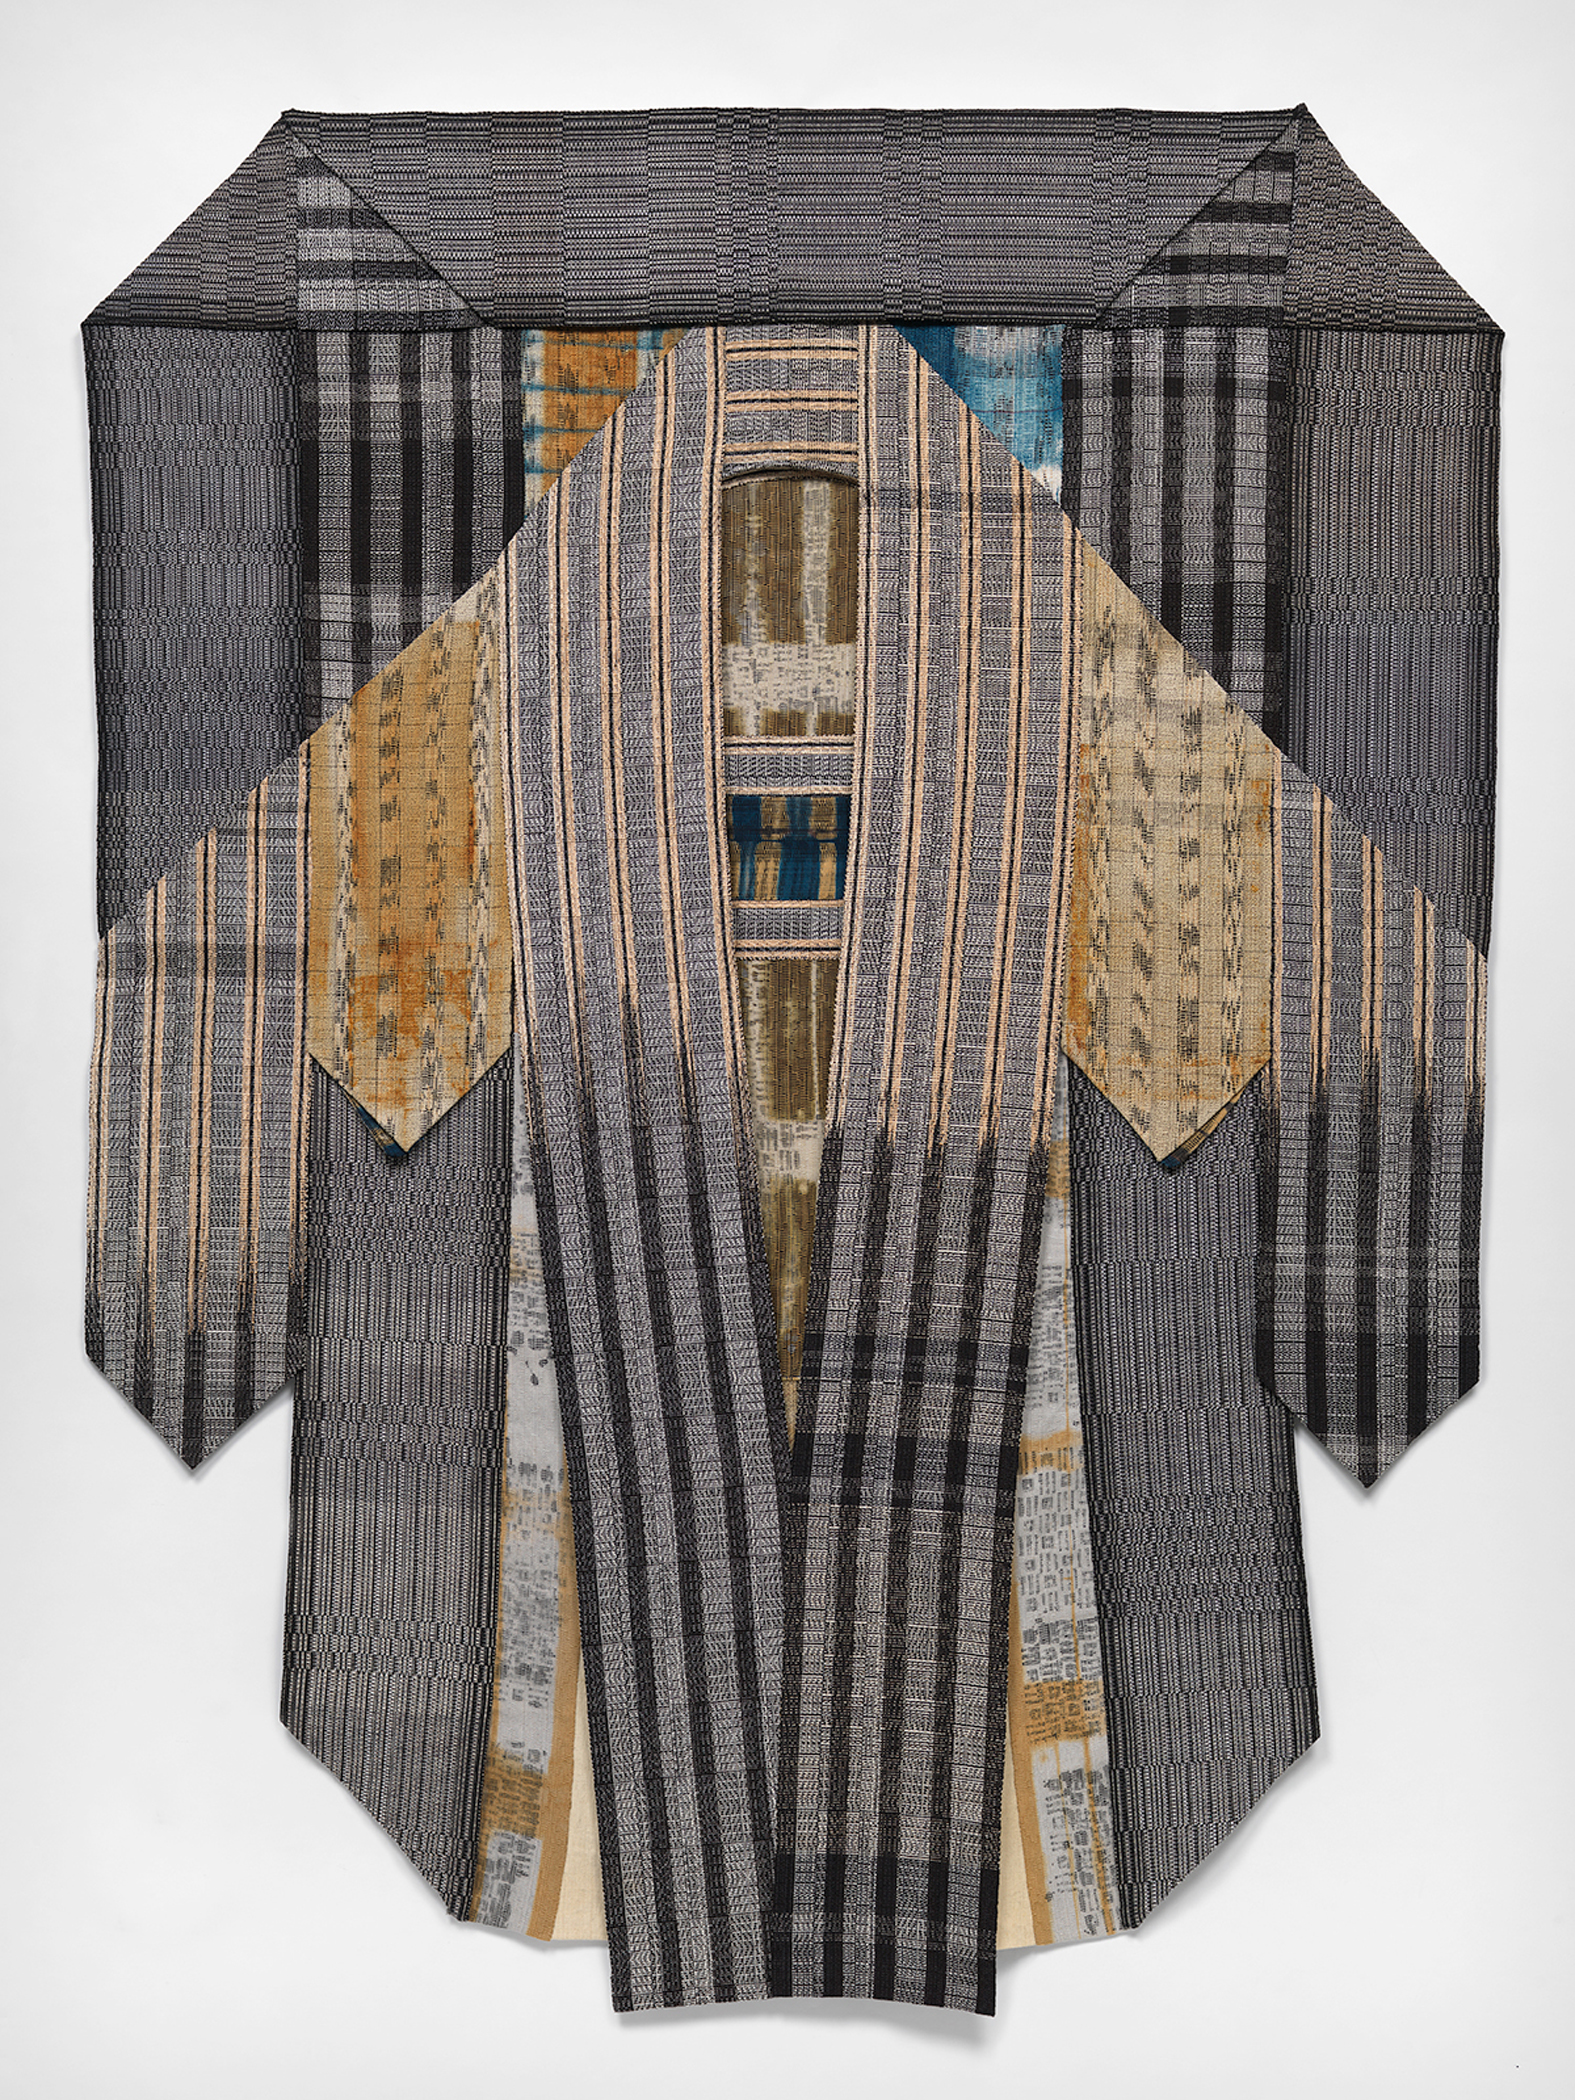 "Embrace,  Ikat, Shibori, Batik Resist Dyeing, Handwoven 91""x& 71"".  Photo Credit: Mark Gulezian"